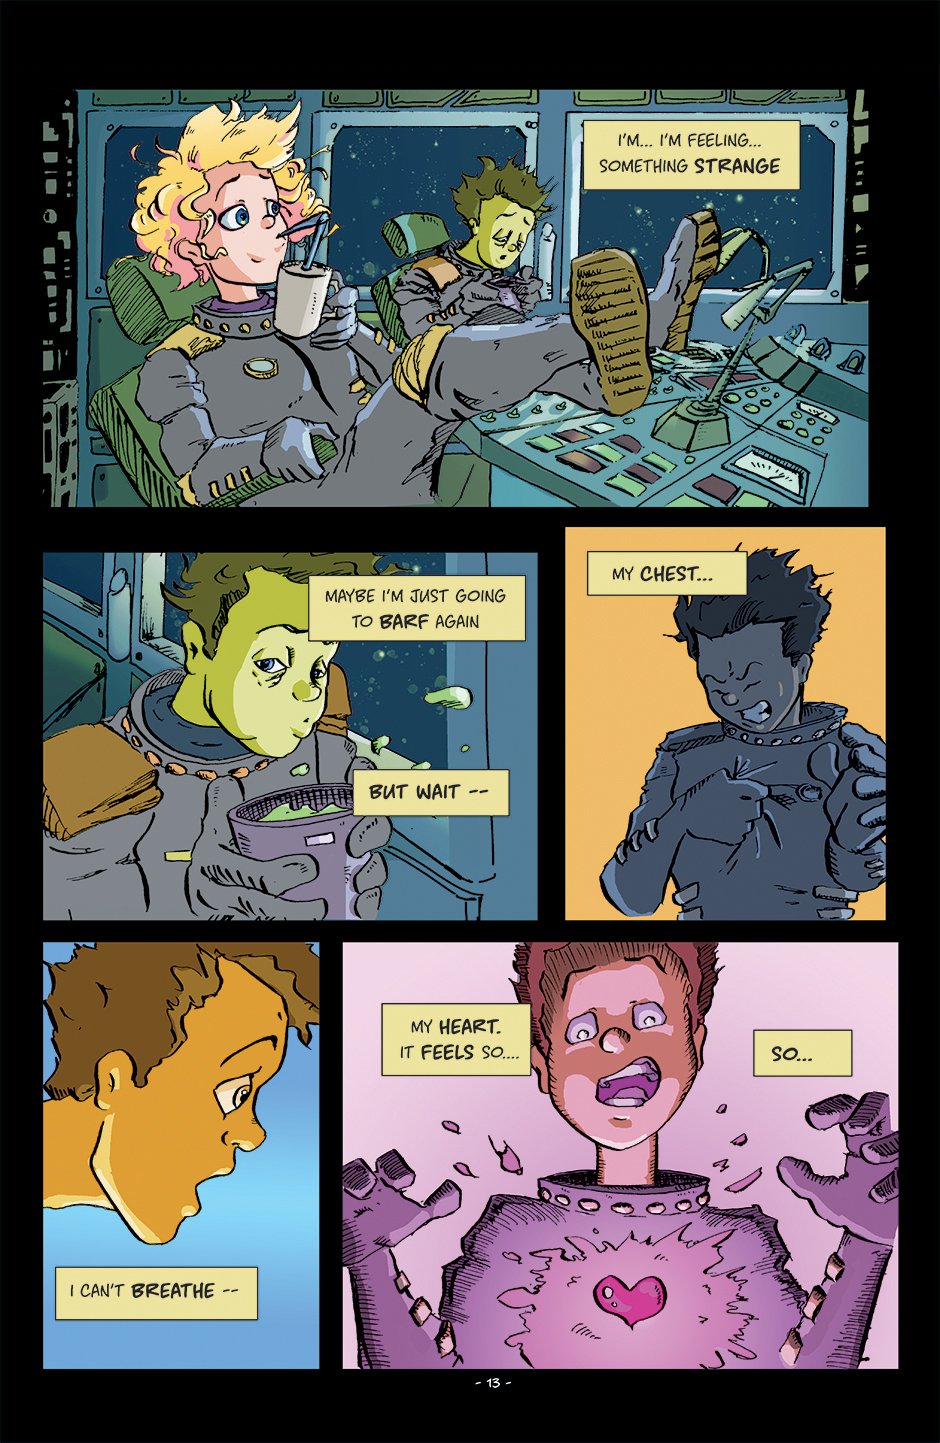 Issue4, Page 13